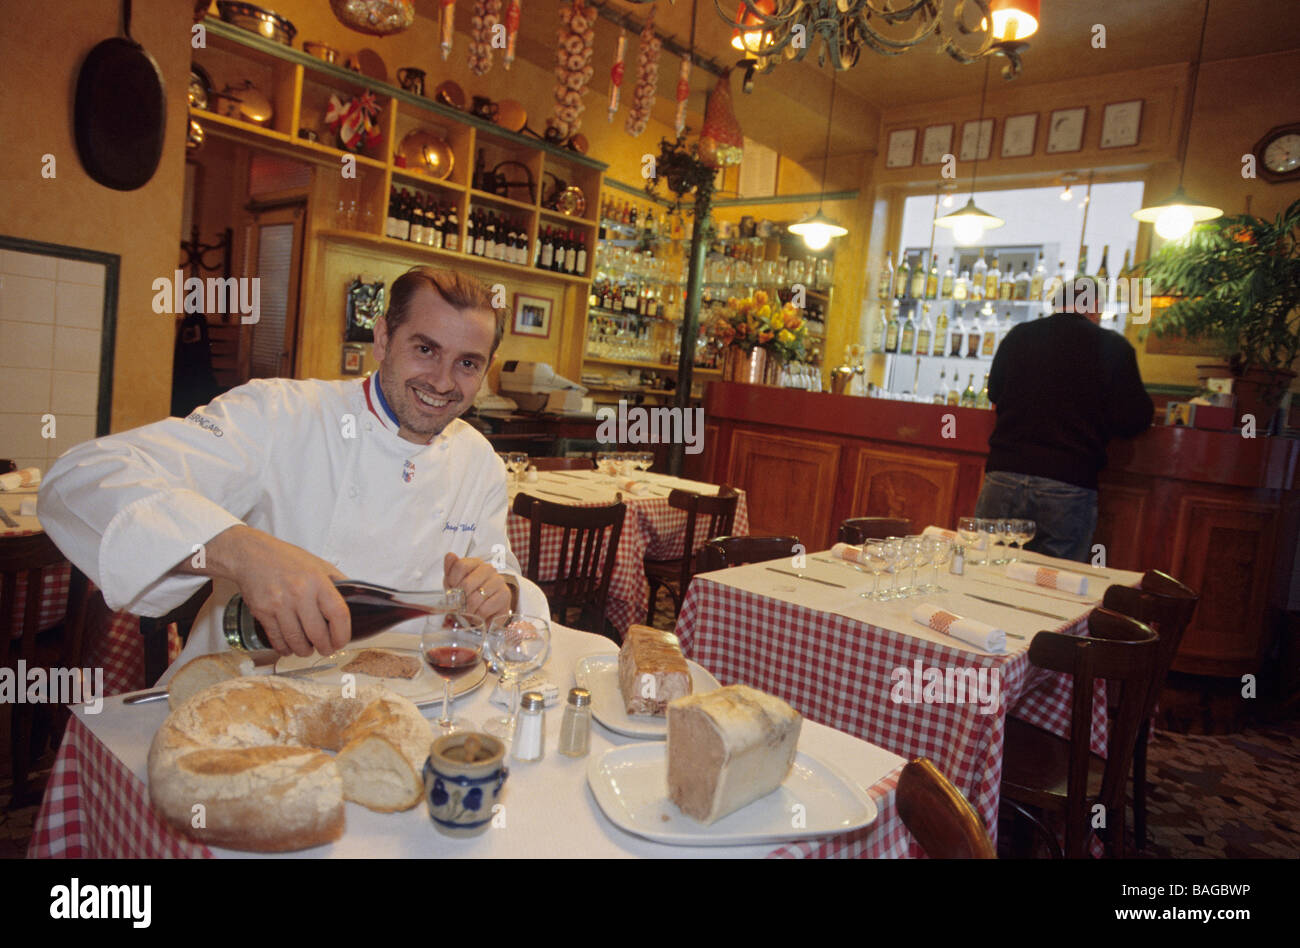 france rhone lyon traditional bouchon restaurant daniel et stock photo 23717506 alamy. Black Bedroom Furniture Sets. Home Design Ideas